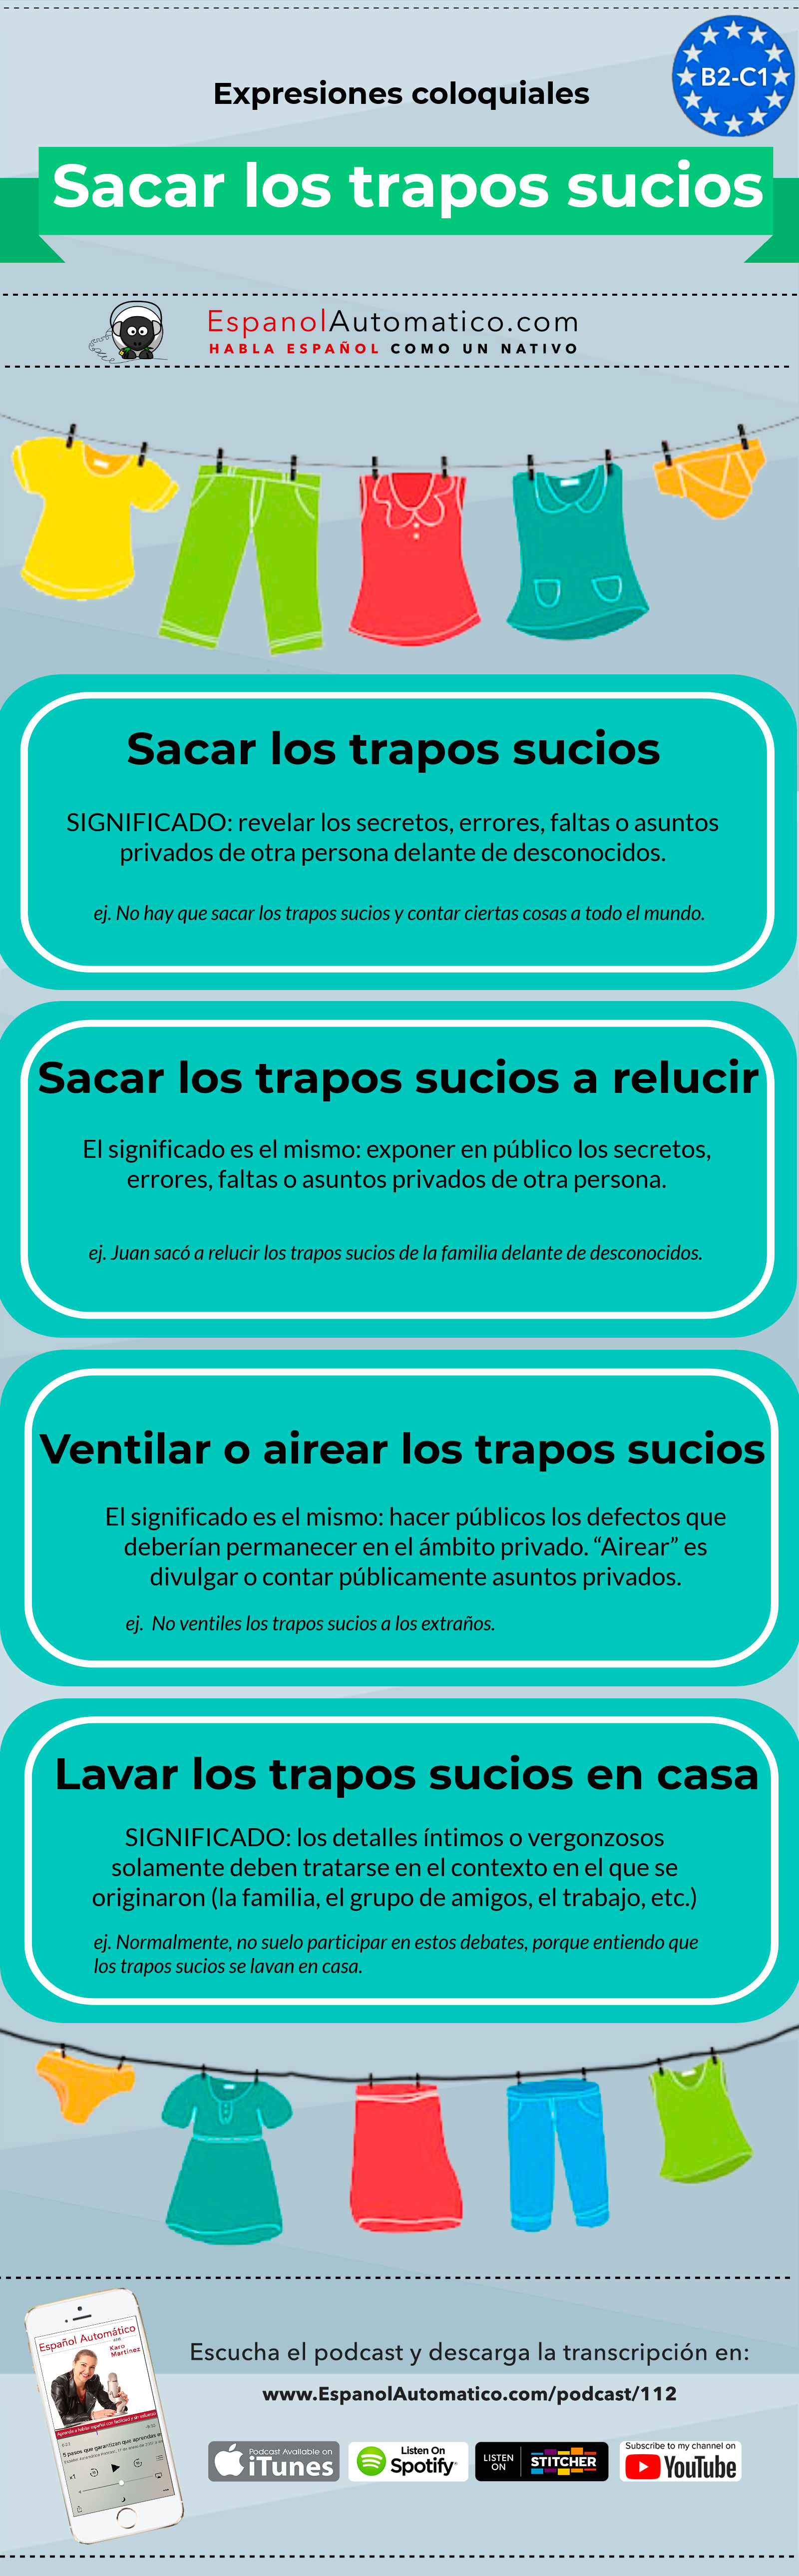 (B2-C1) Expresiones españolas: Sacar los trapos sucios   [Podcast 112] Learn Spanish in fun and easy way with our award-winning podcast: http://espanolautomatico.com/podcast/112 REPIN for later #teachspanish #spanishteacher #speakspanish #spanishlessons #learnspanishforadults #learnspanishforadultsfree #learningspanish #learningspanishlanguage #spanishworksheets #vocabularyactivities